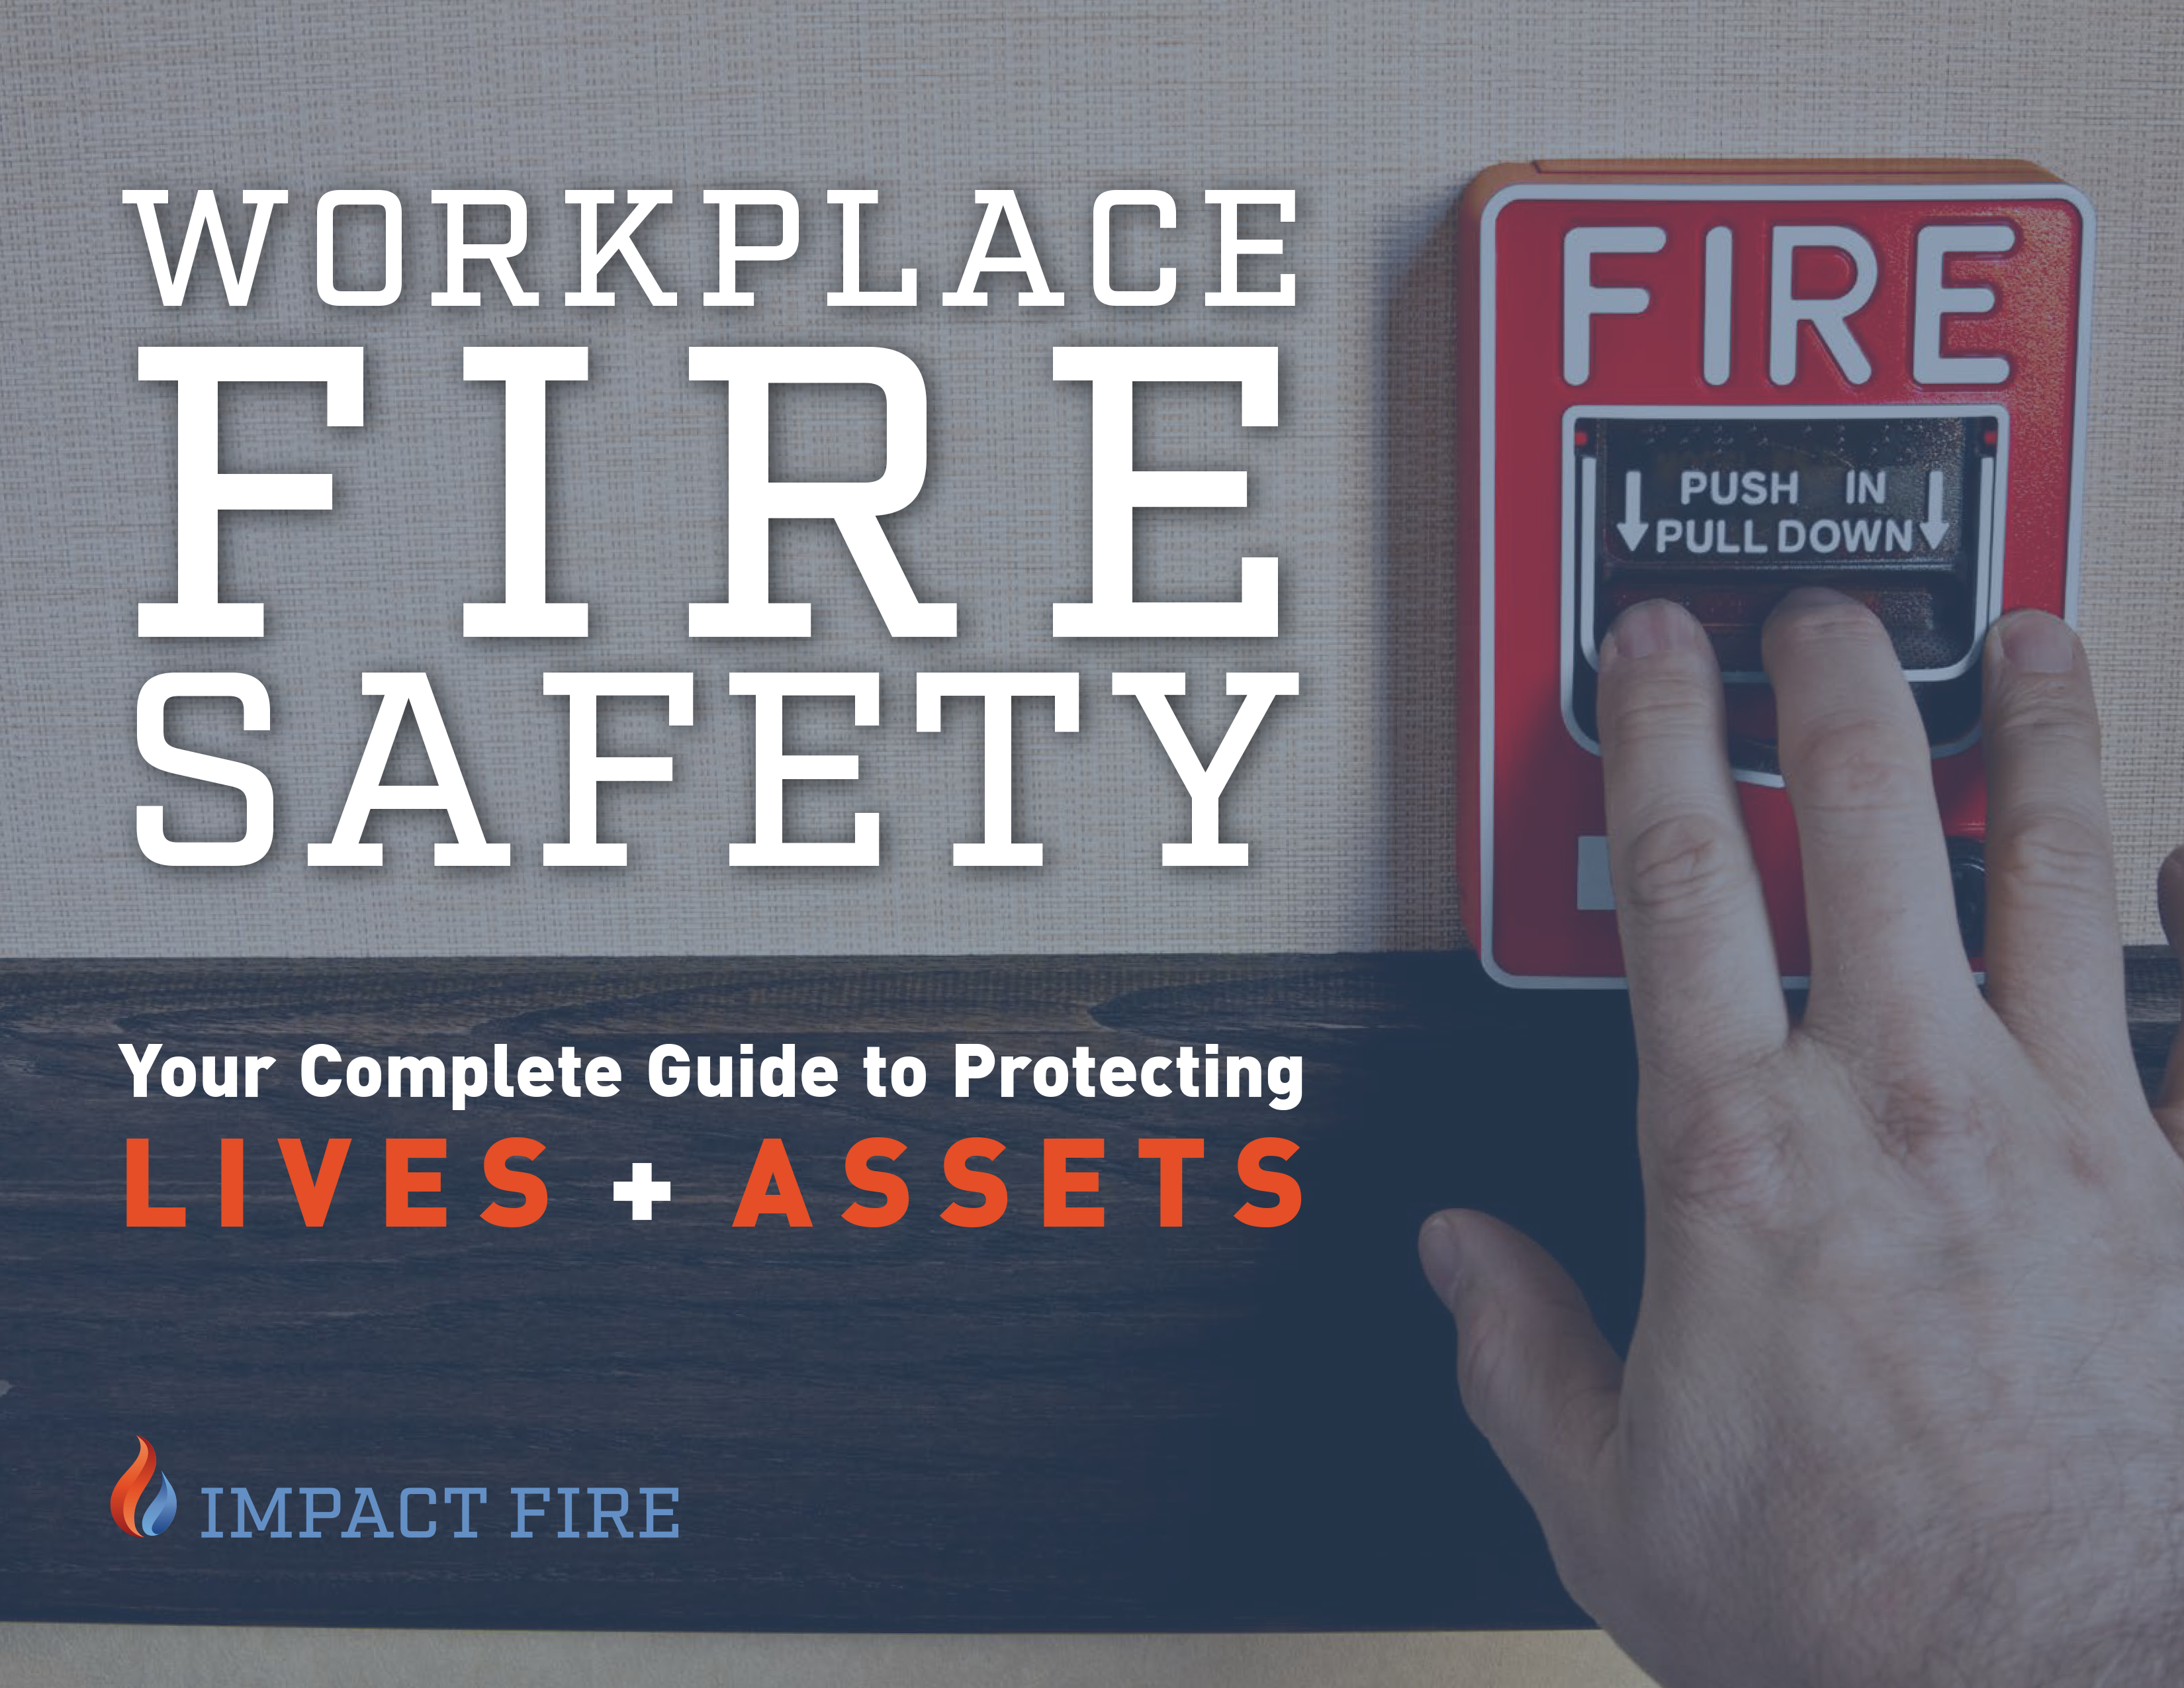 Workplace Fire Safety: Your Complete Guide to Protecting Lives + Assets